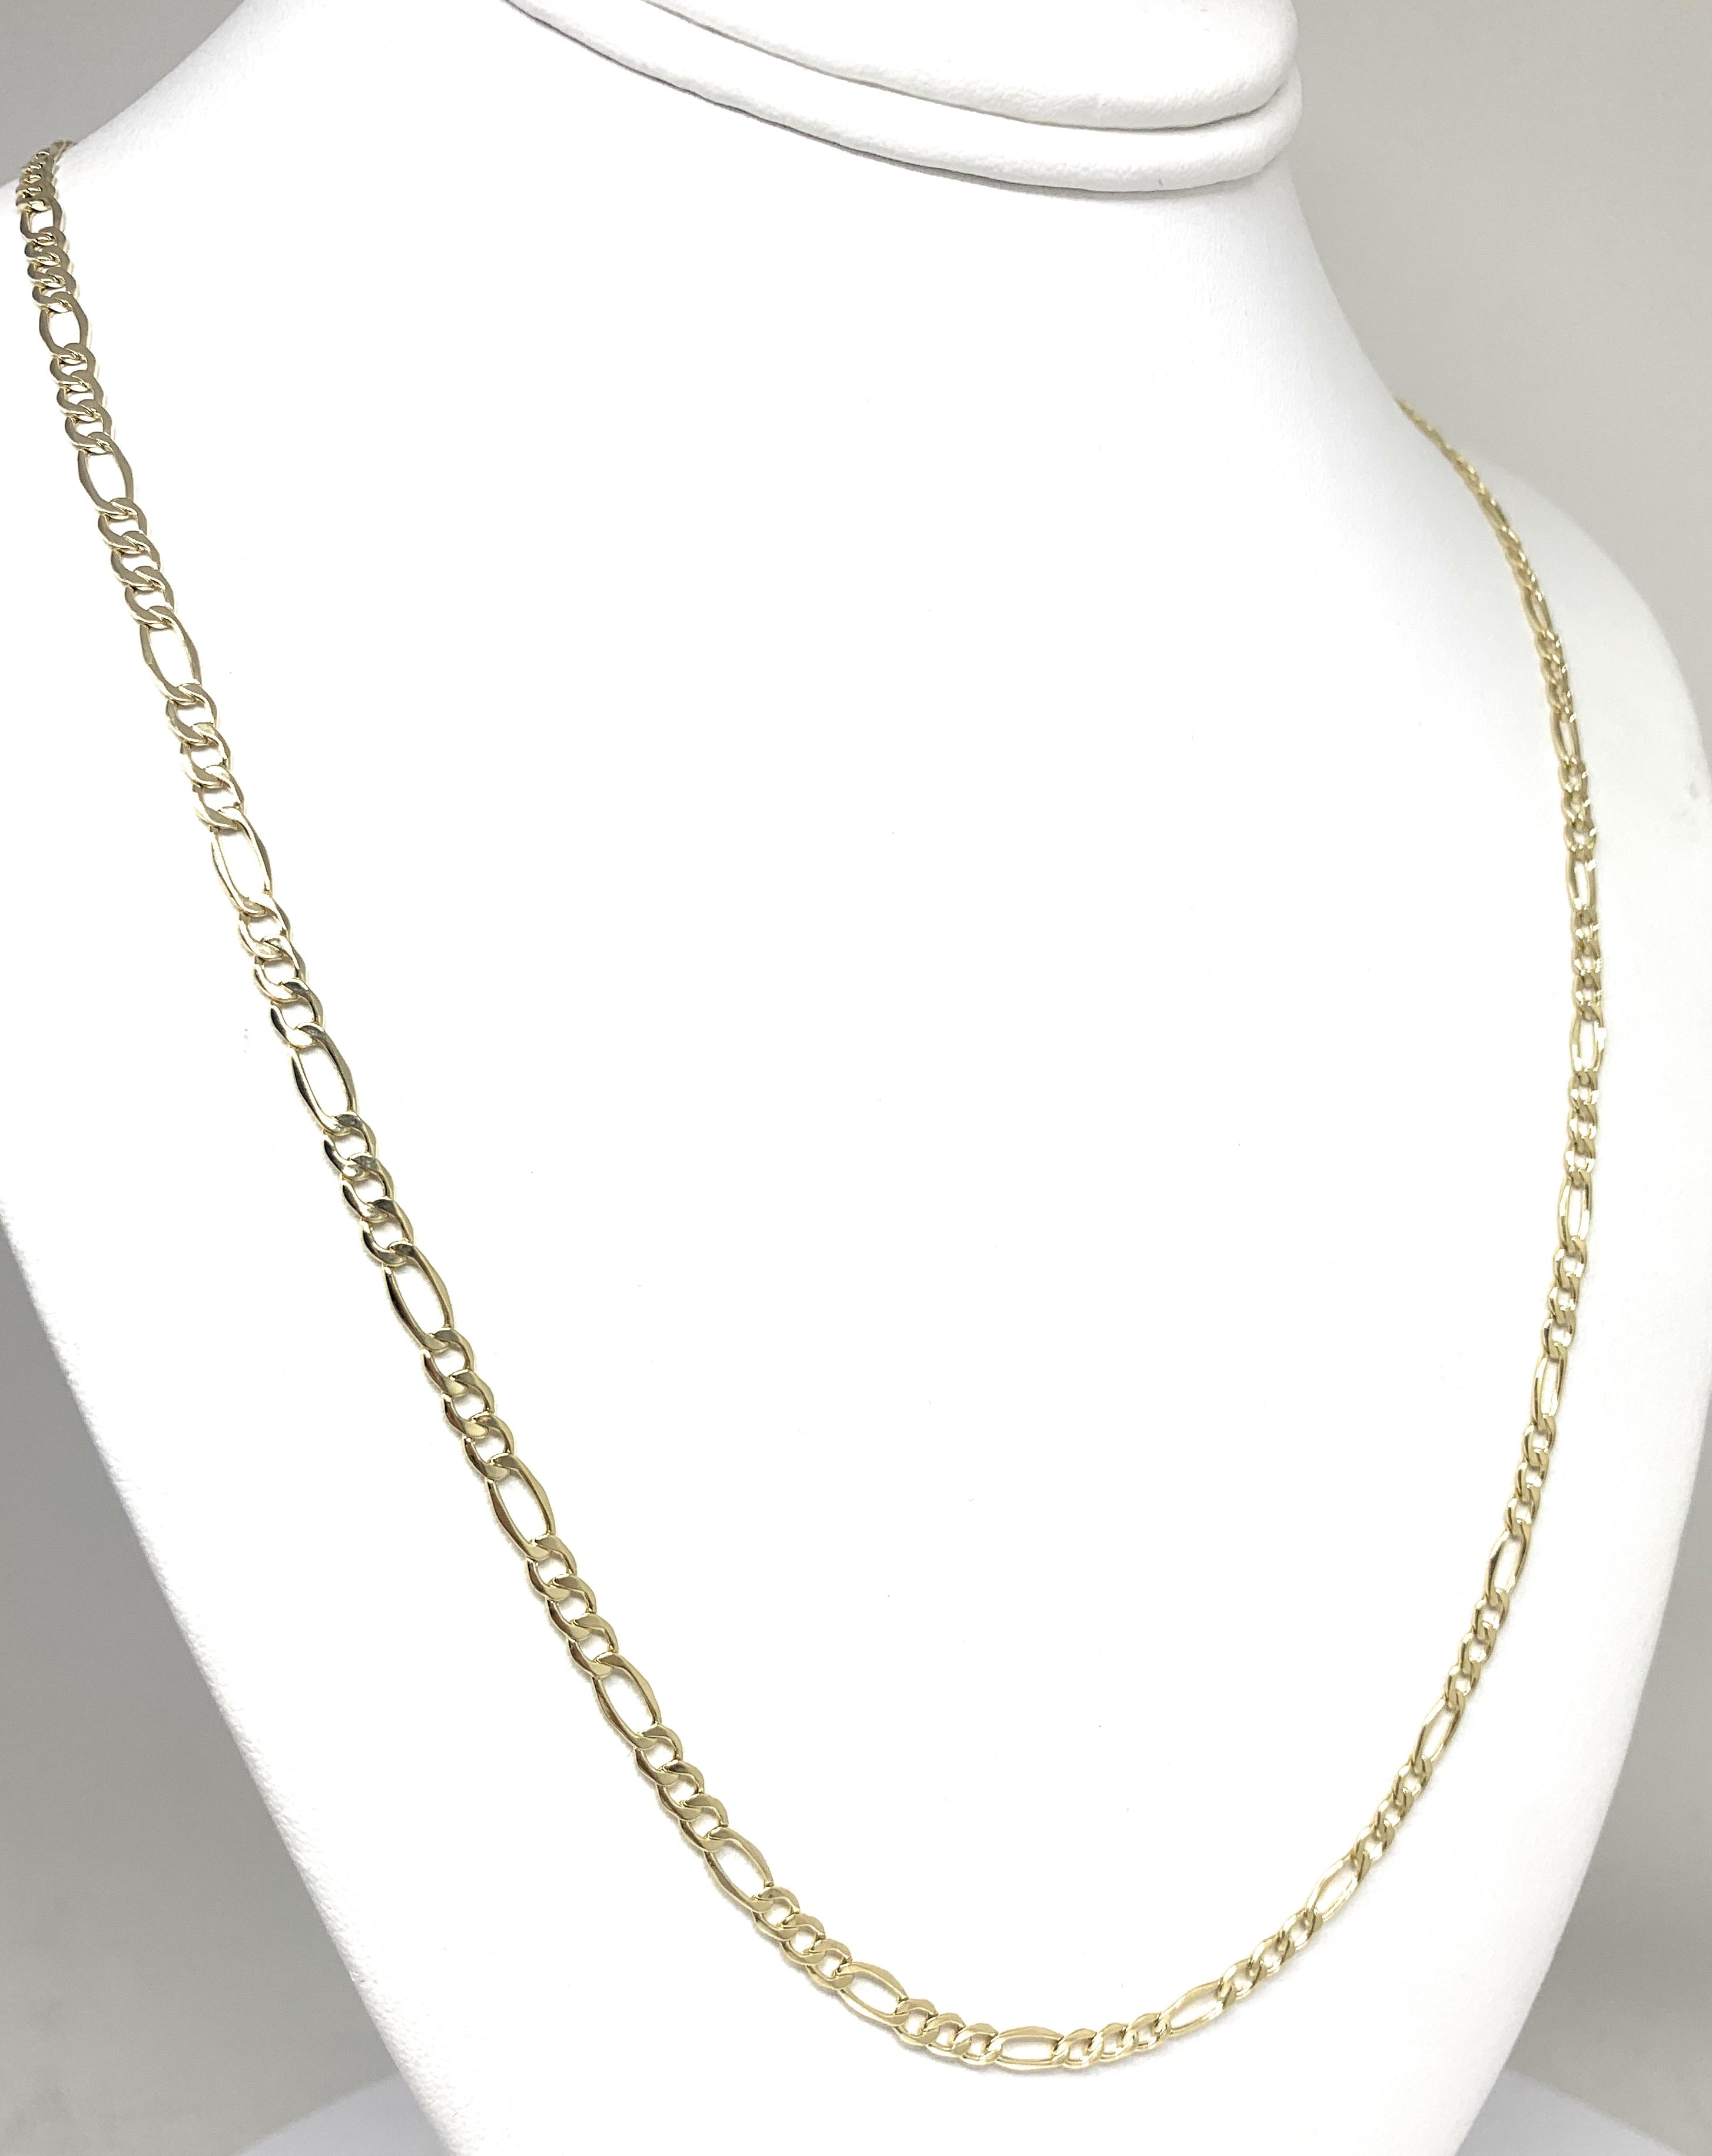 10k Solid Gold Figaro Chain 18-26 inches 3.5mm (Semi-Hollow Style)